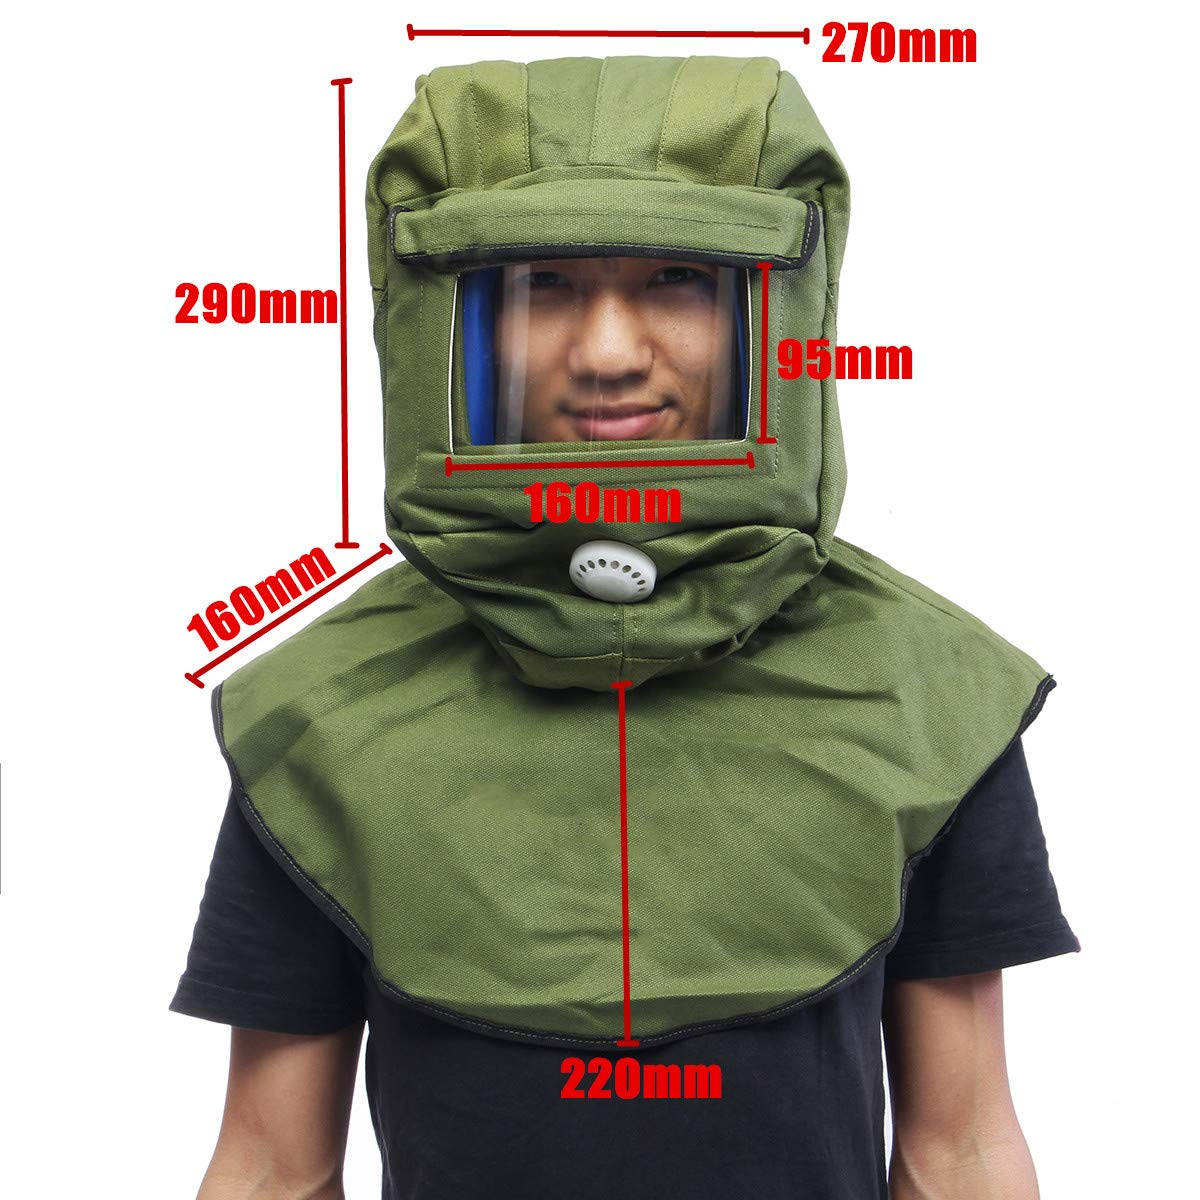 Canvas Sand Blasting Hood Cap Face Mask Anti-dust Equipment - Breathable Light Weight Comfortable 29x27x22cm (Green)